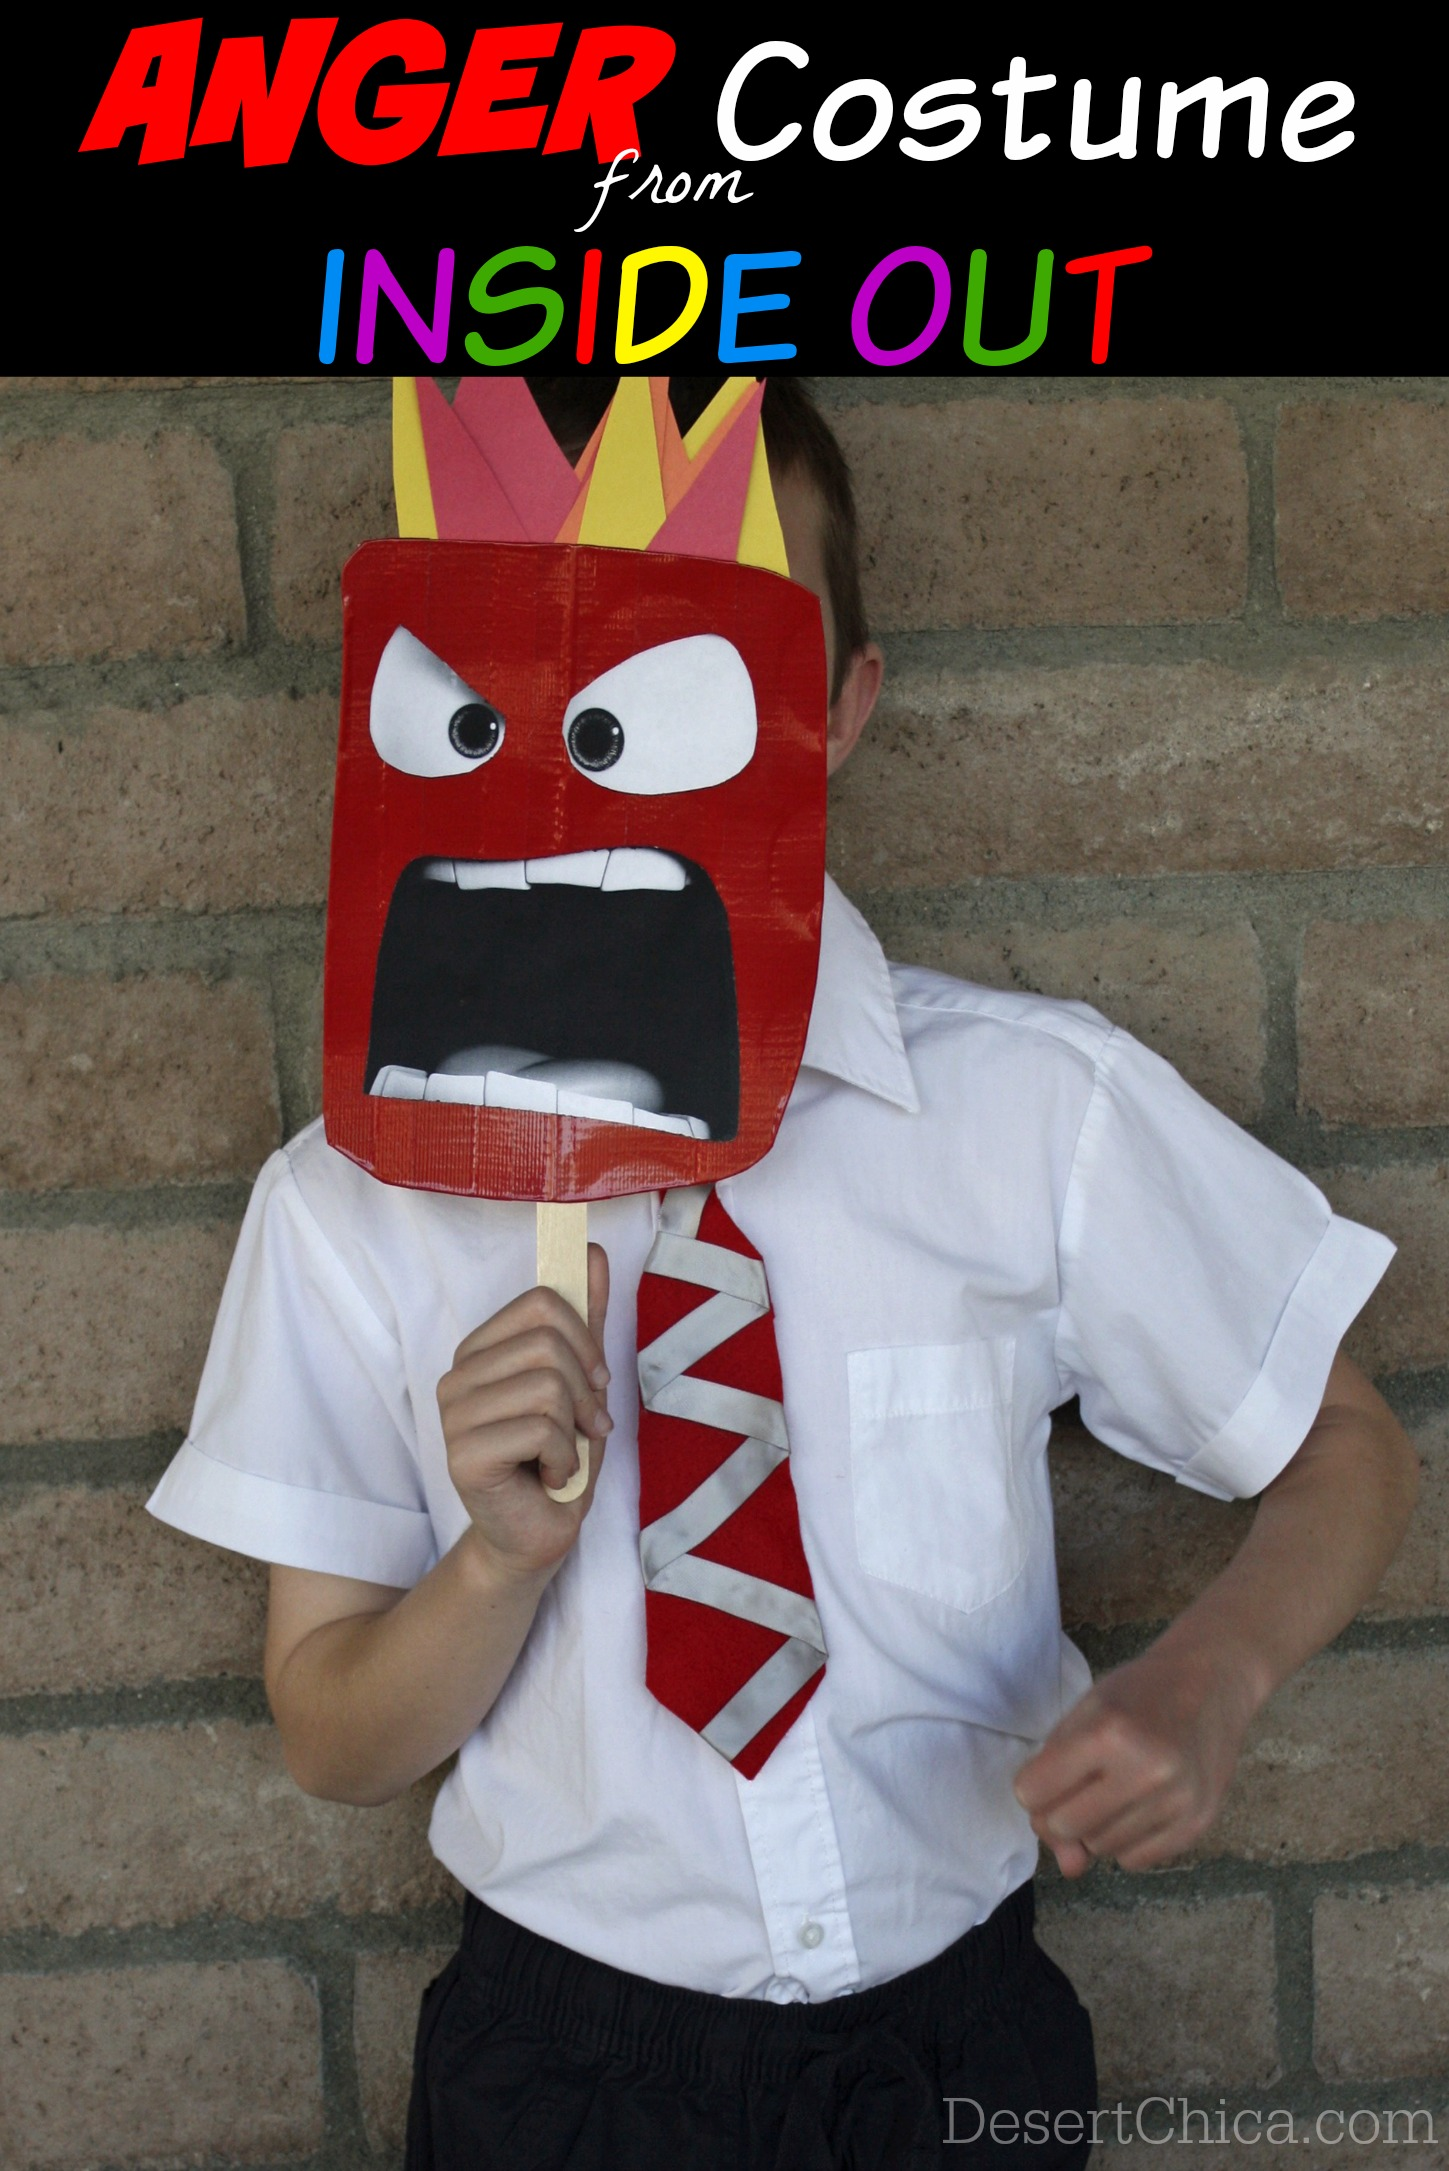 Anger-From-Inside-Out-Costume-Idea